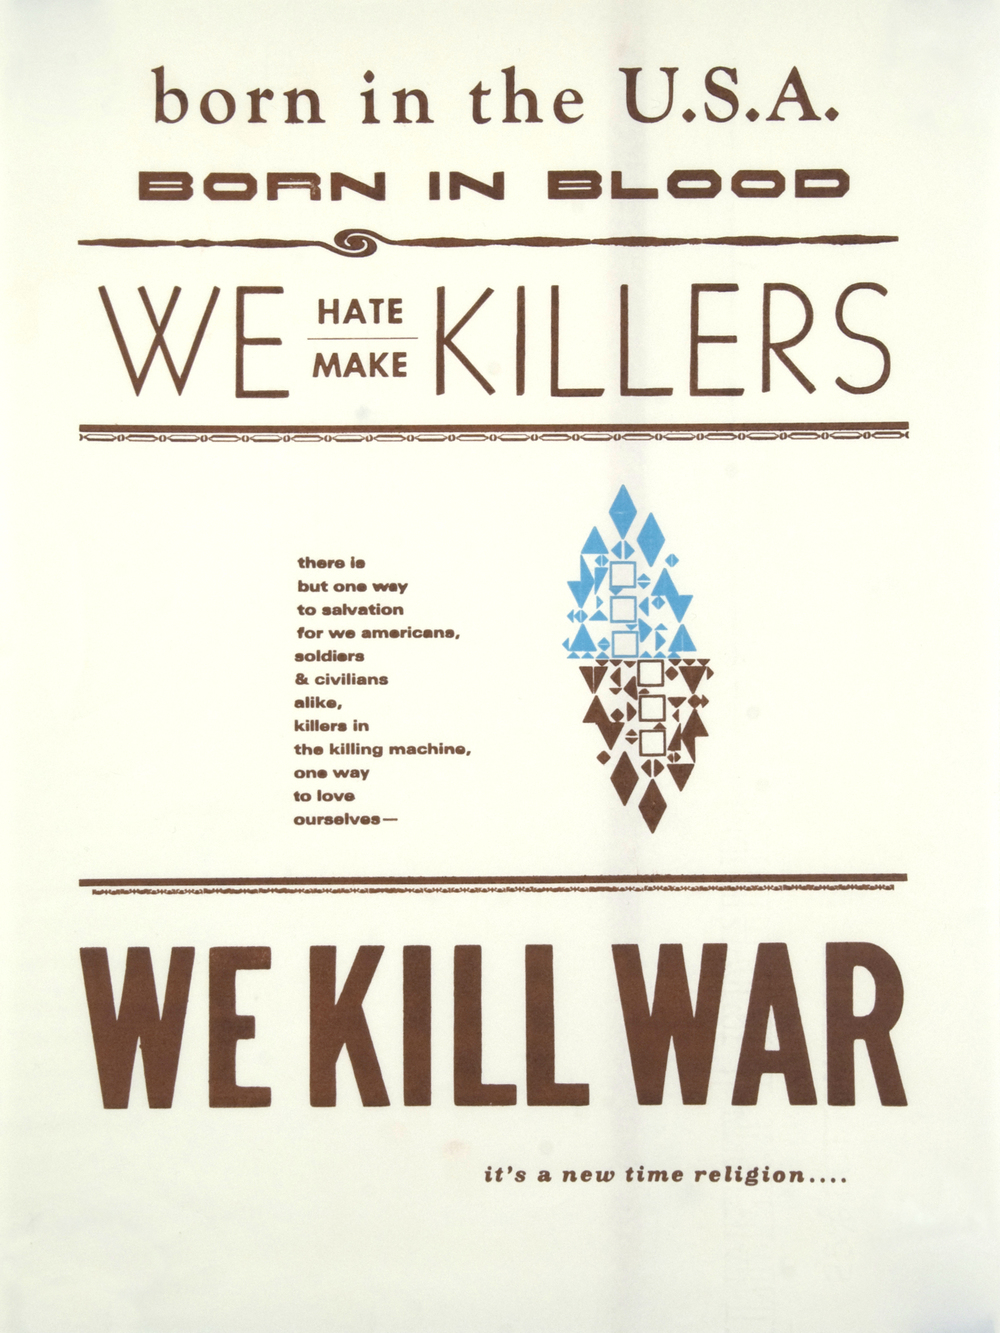 07 We Kill War by Dan Wang.jpg